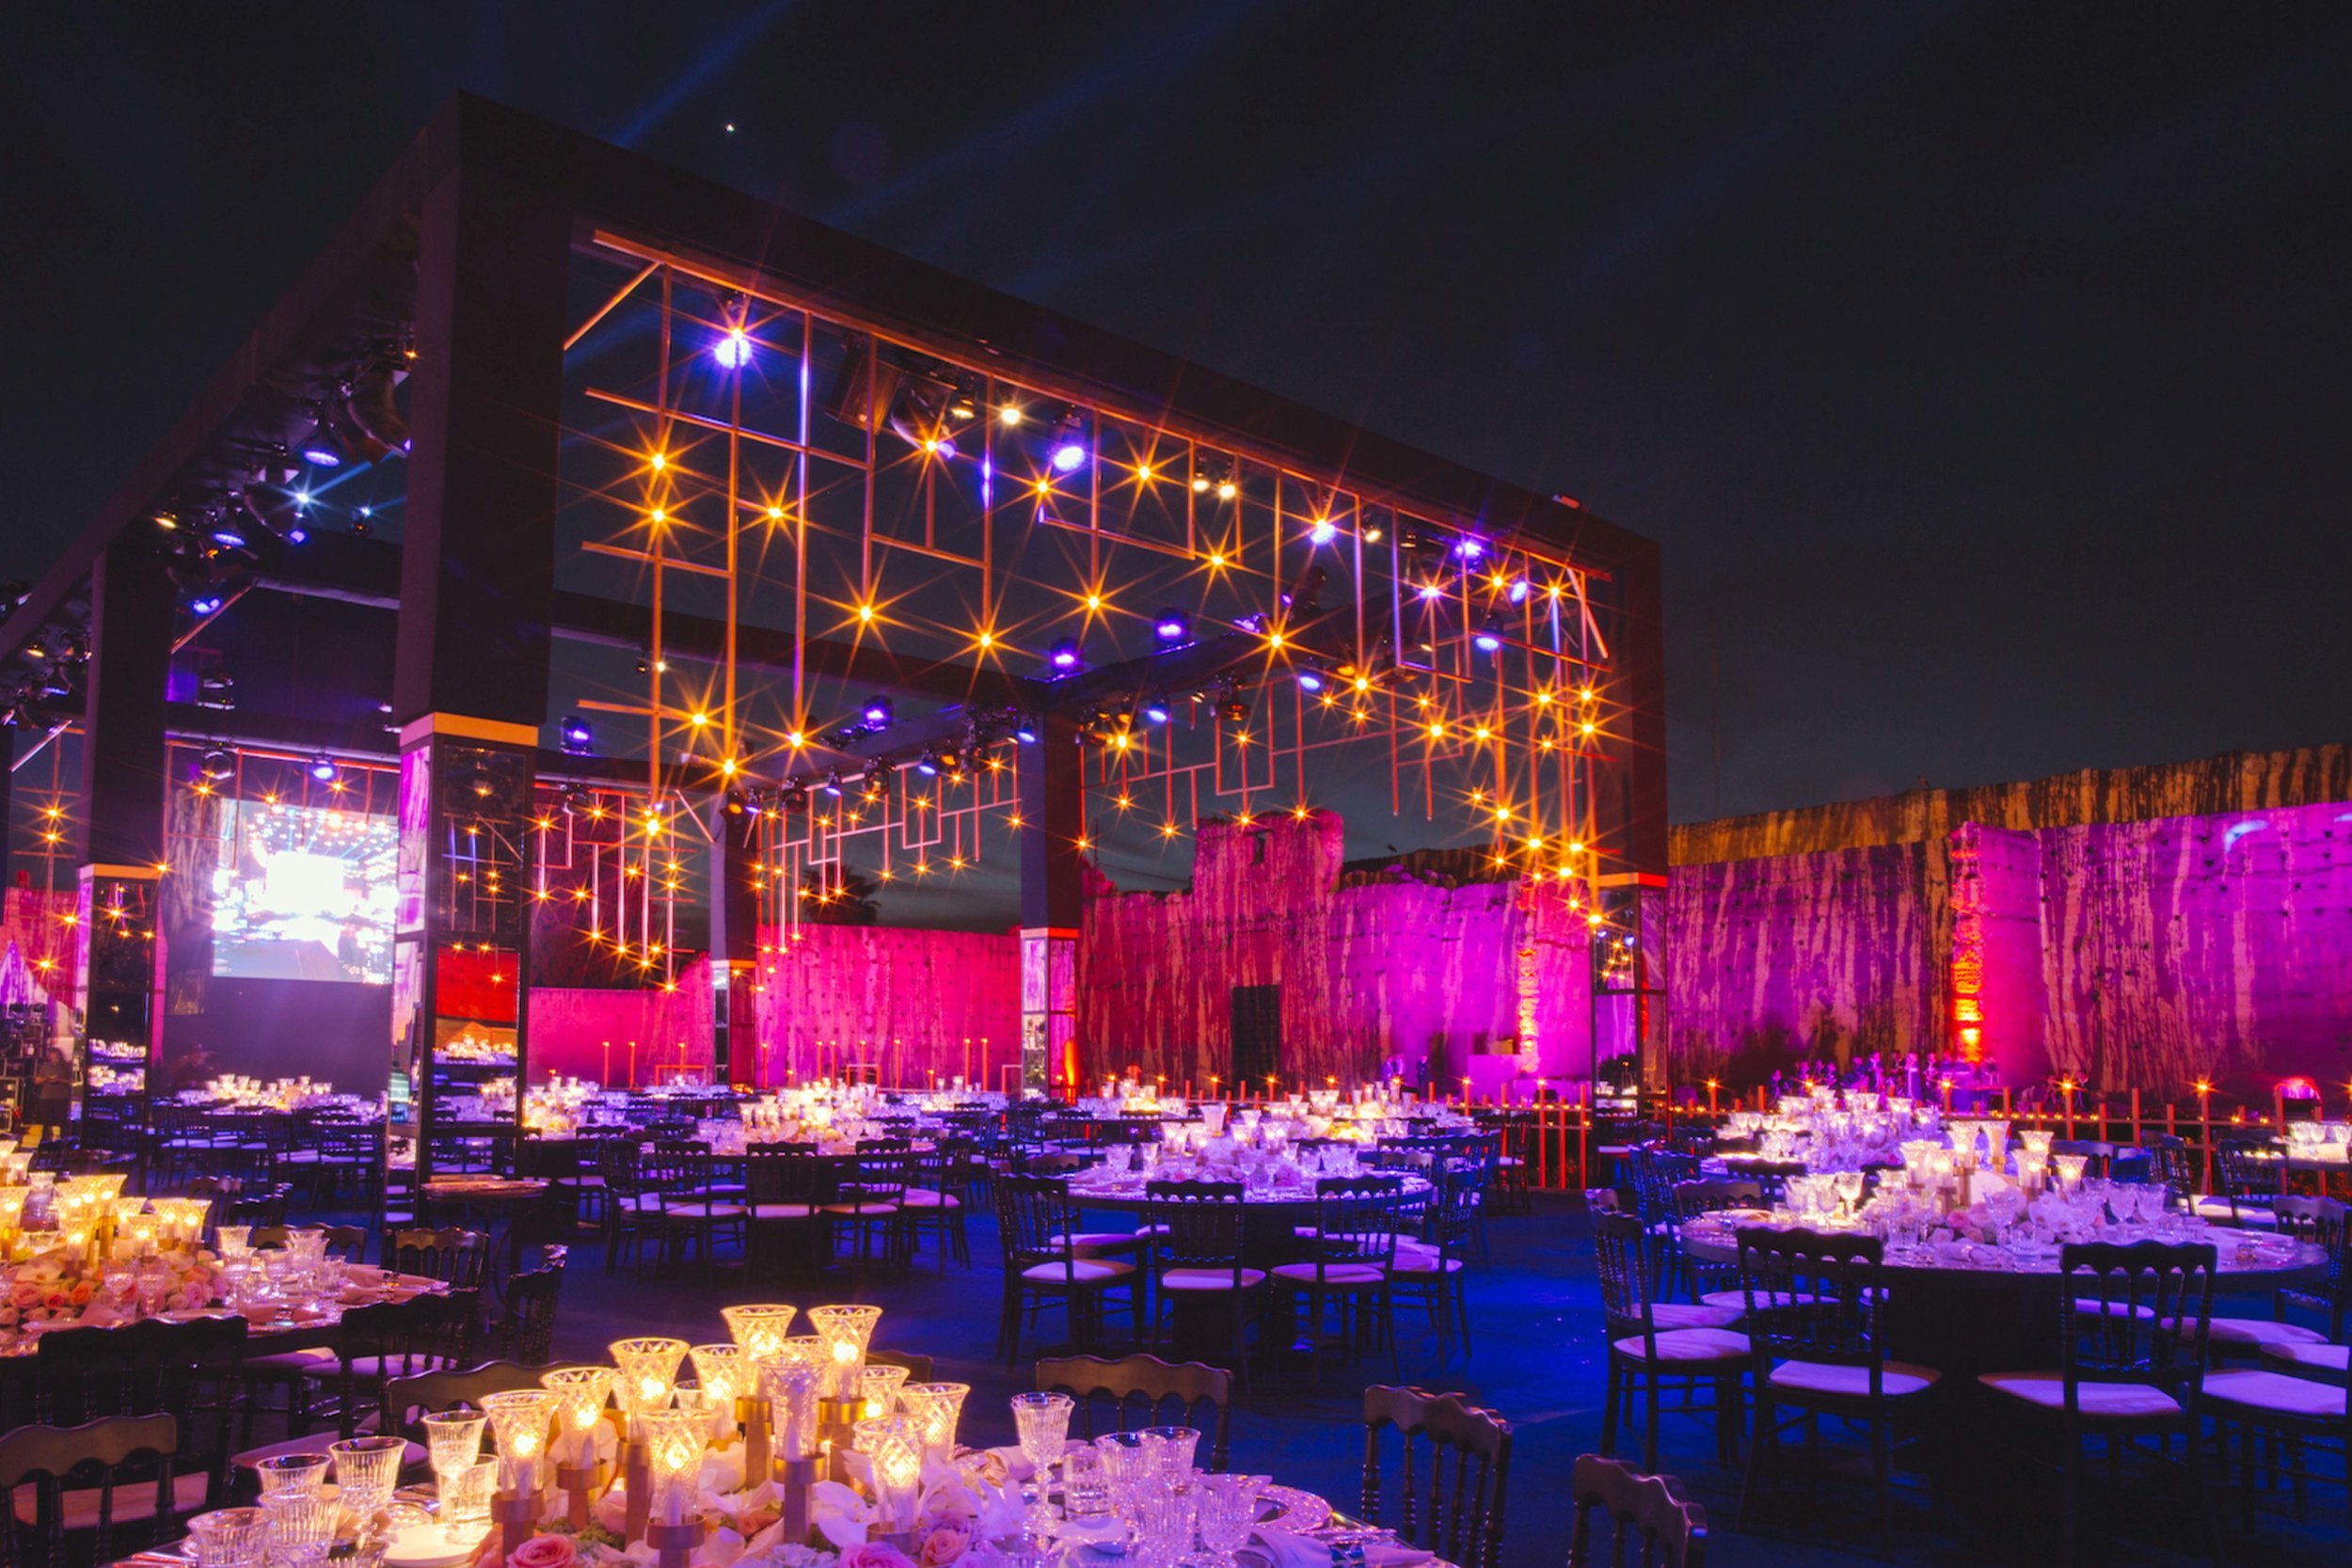 WEDDING - DATE: MAY, 2015LOCATION: MARRAKECH, MOROCCONUMBER OF GUESTS: 1000